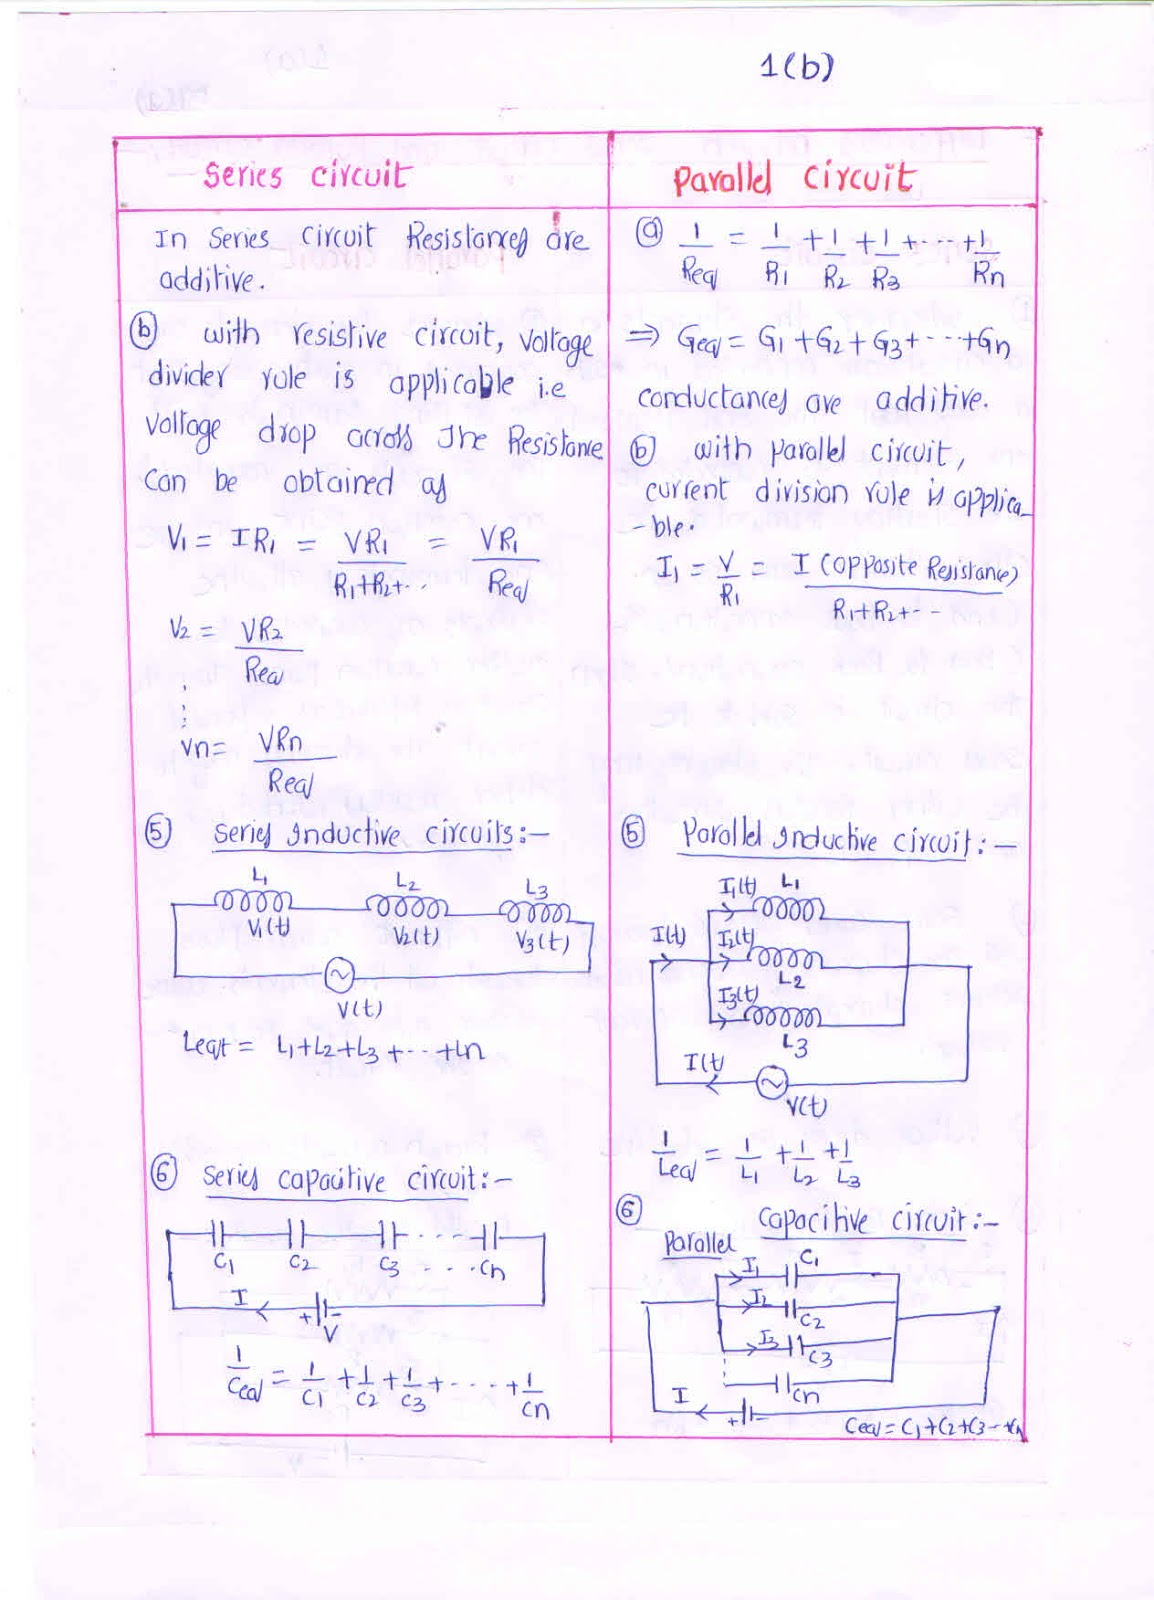 Praveenksphoorthy Unit 1b Differences Between Series And Parallel Circuit Circuits